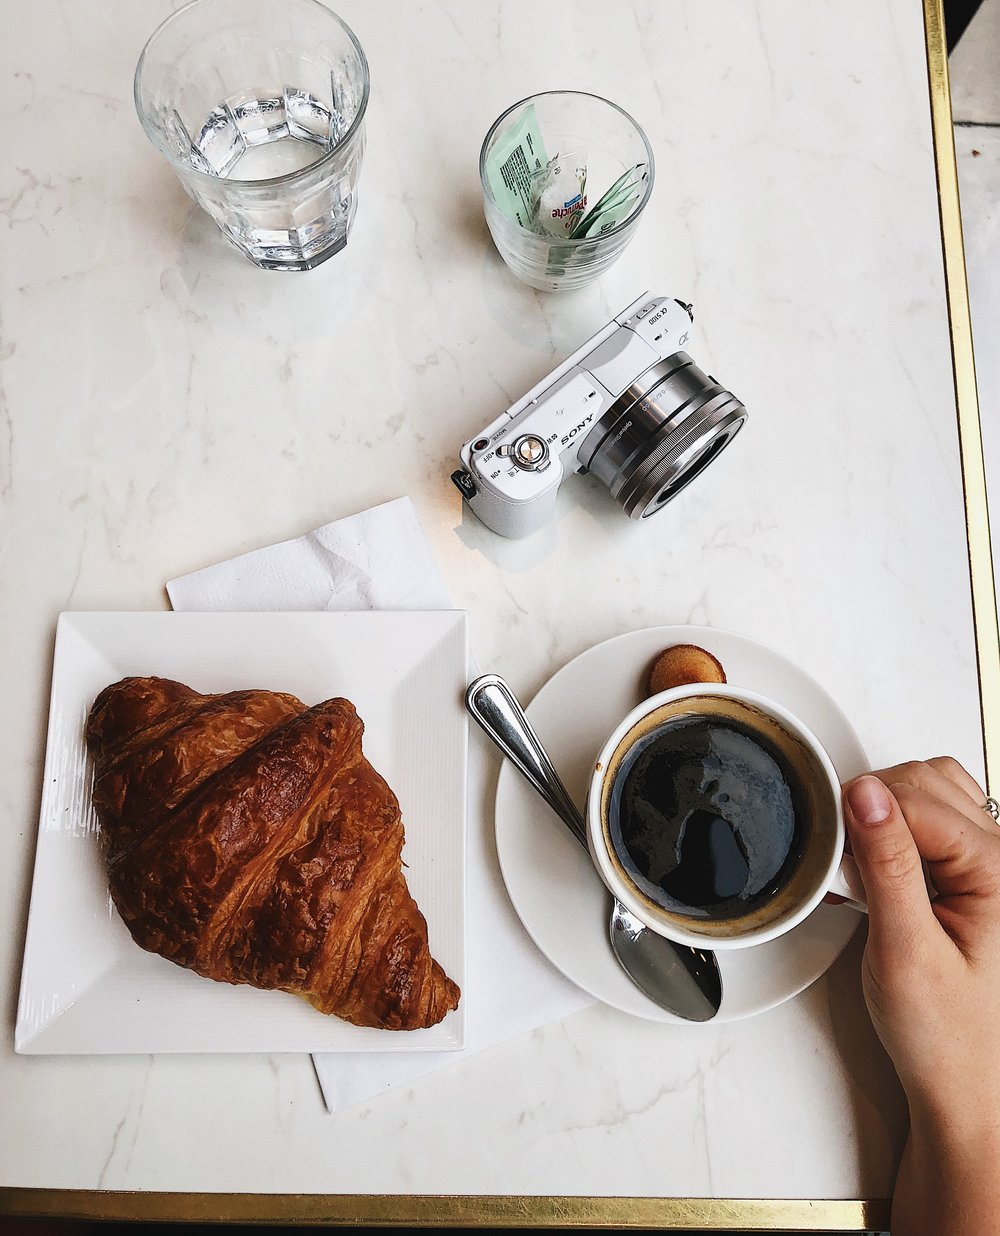 But first, coffee - When my friends and family visit me in the City, the most frequently asked question is where we can get the best coffee. And I'm always happy to show them all my favorite spots. And of course you guys too! So today, let's talk about my absolute favorite morning coffee spot: Maison Kayser.